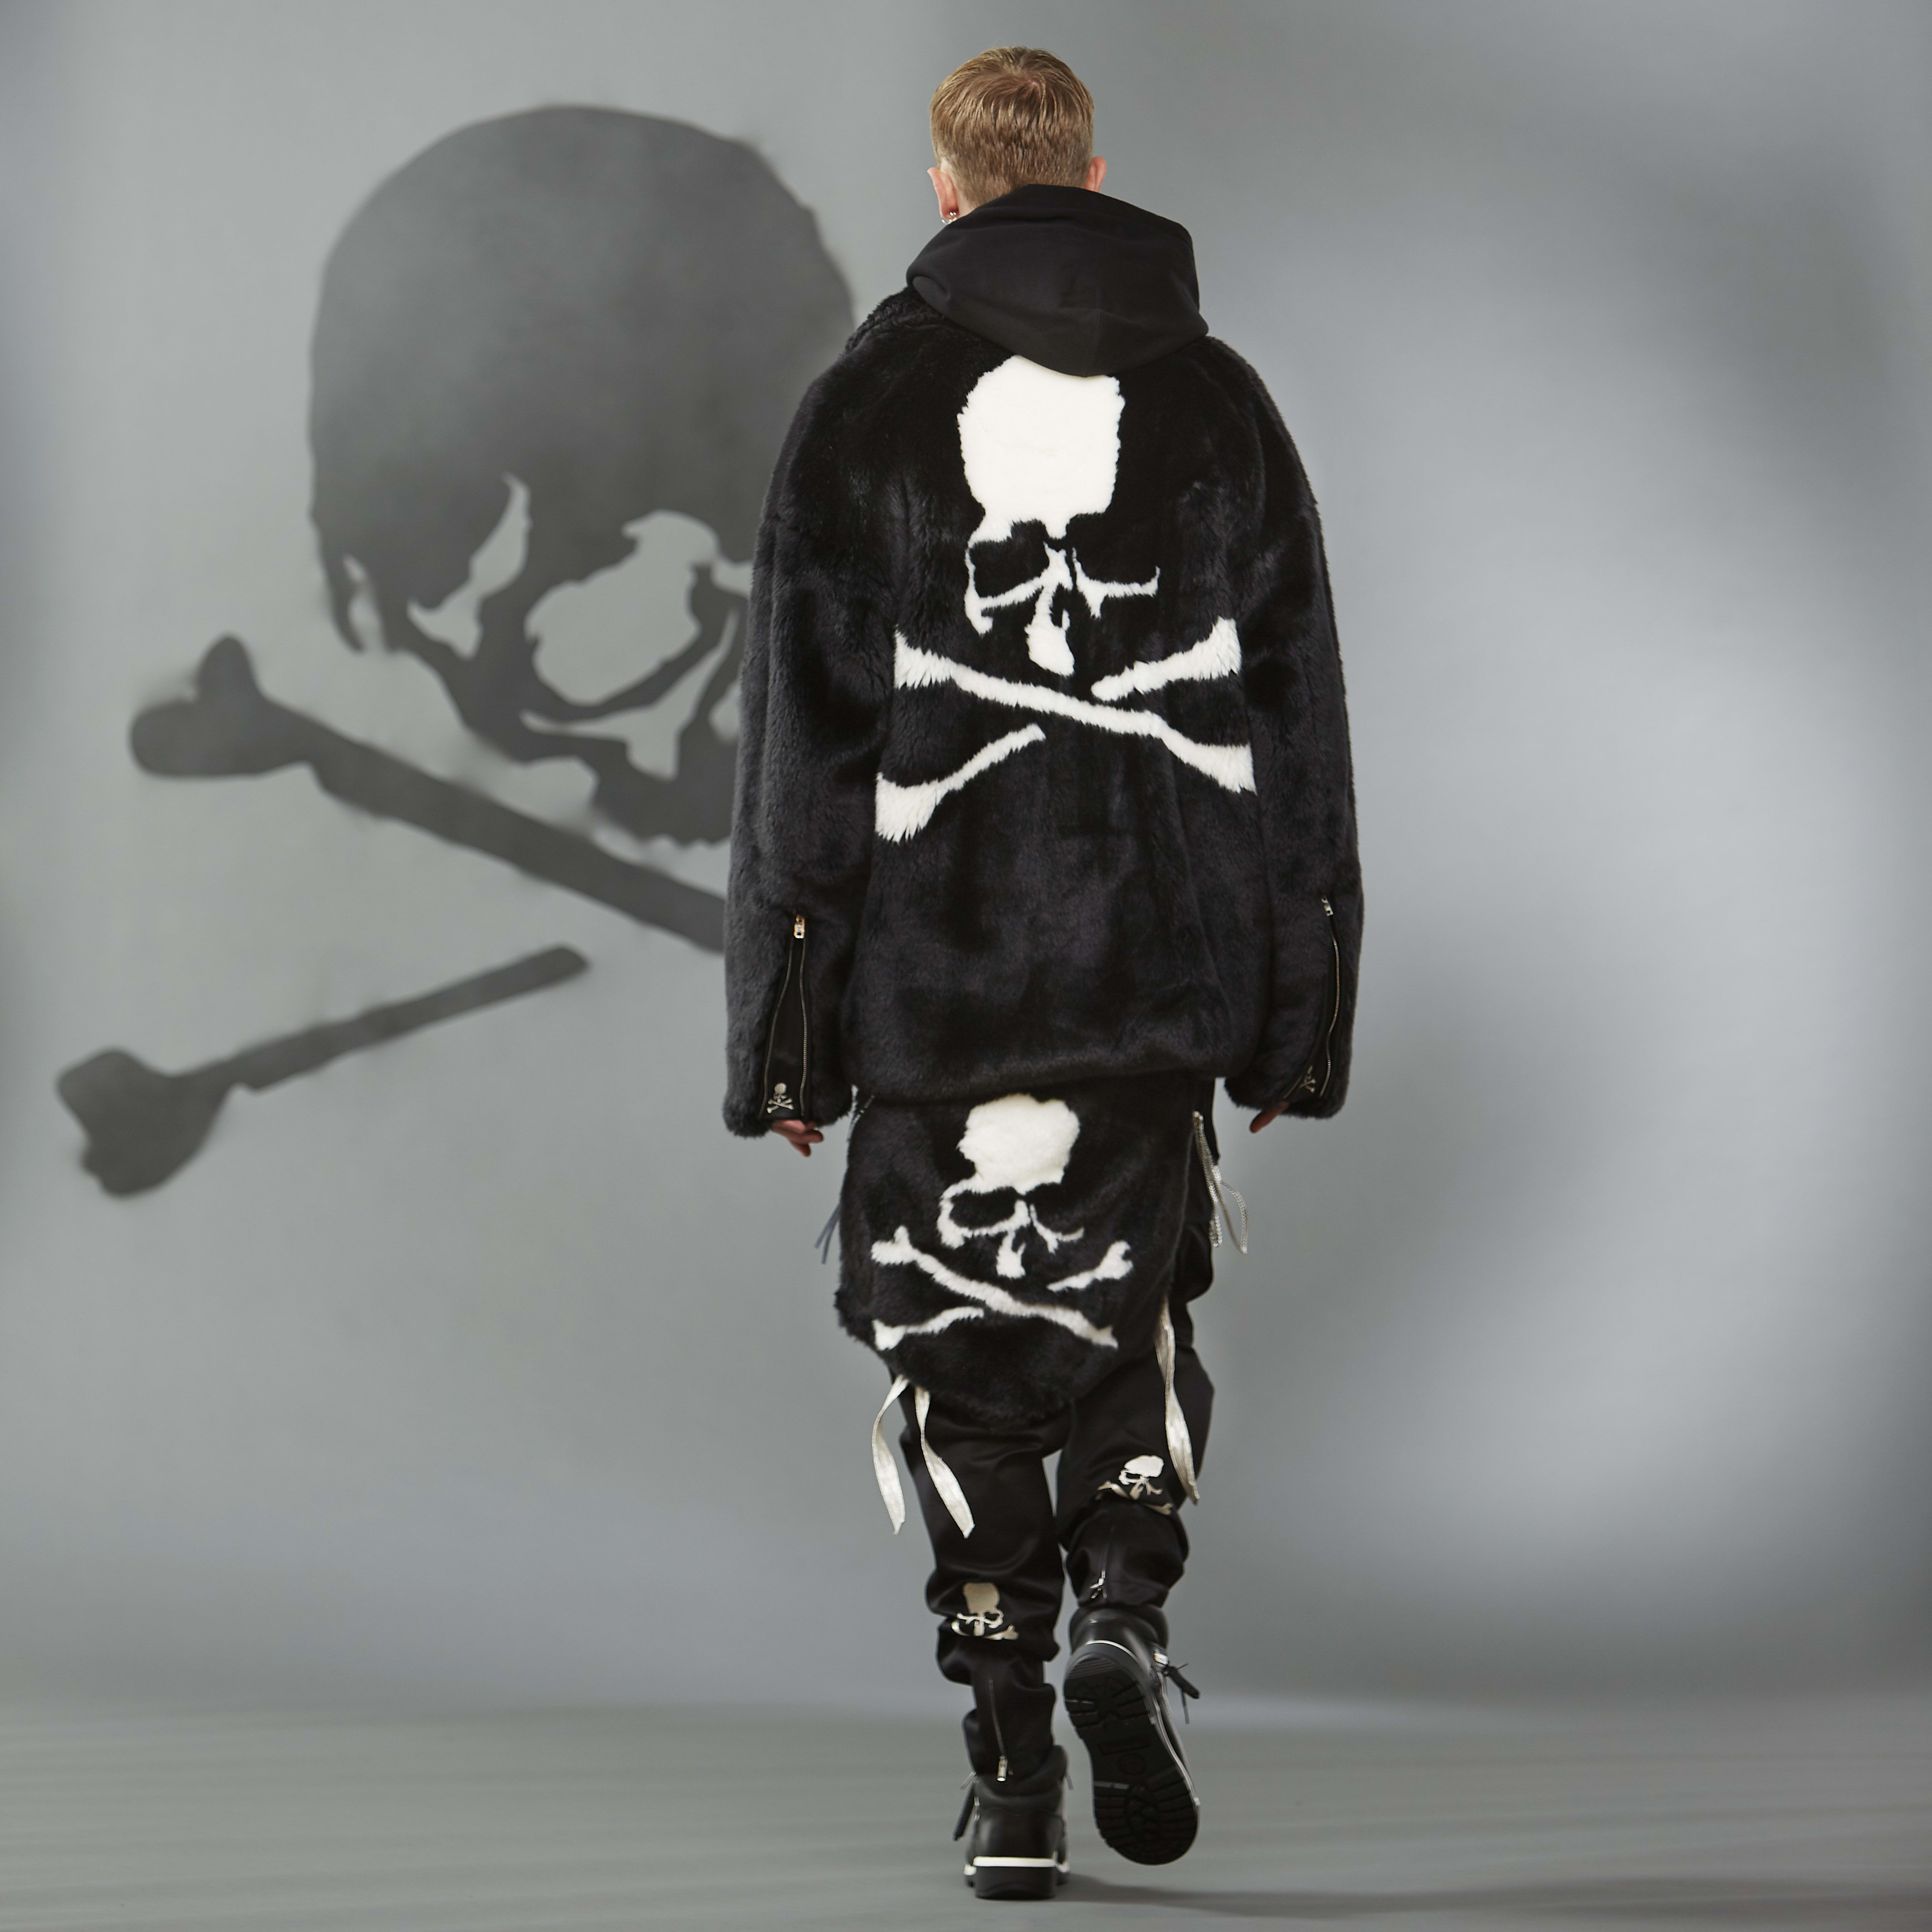 MASTERMIND WORLD FW19 look book presentation with black oversized coat and layered skull motifs